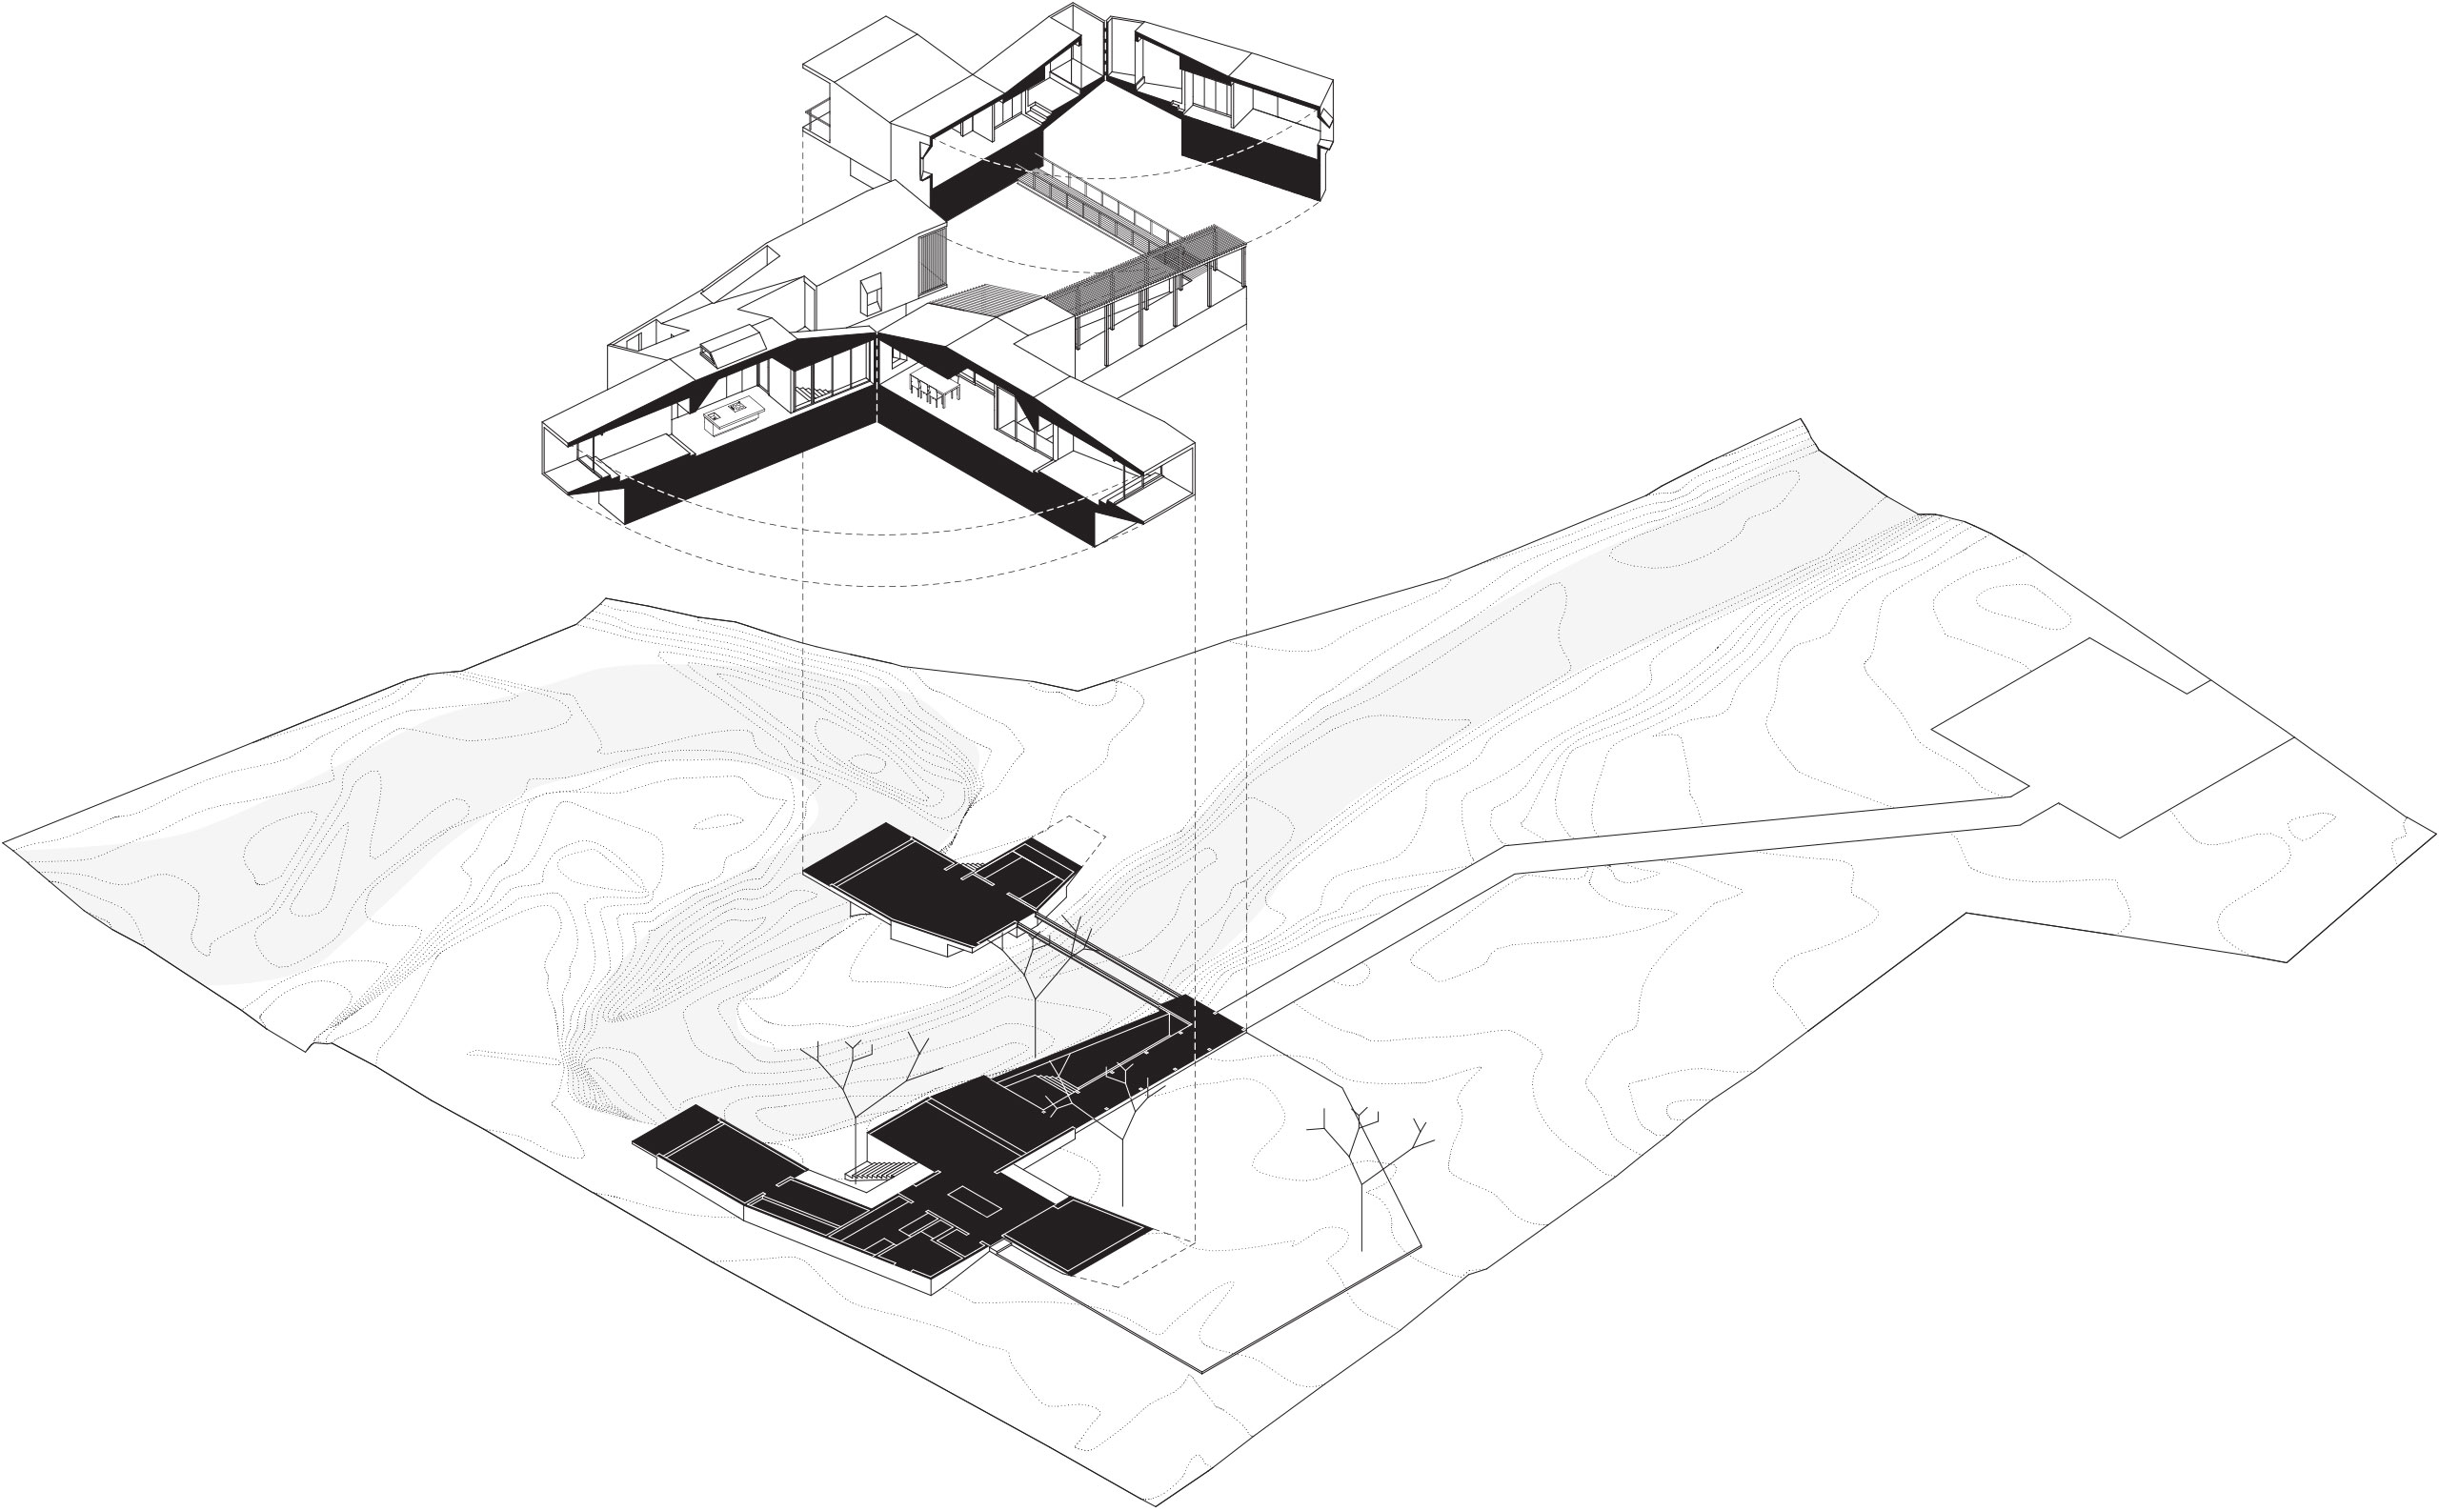 house on a stream sectional axonometric